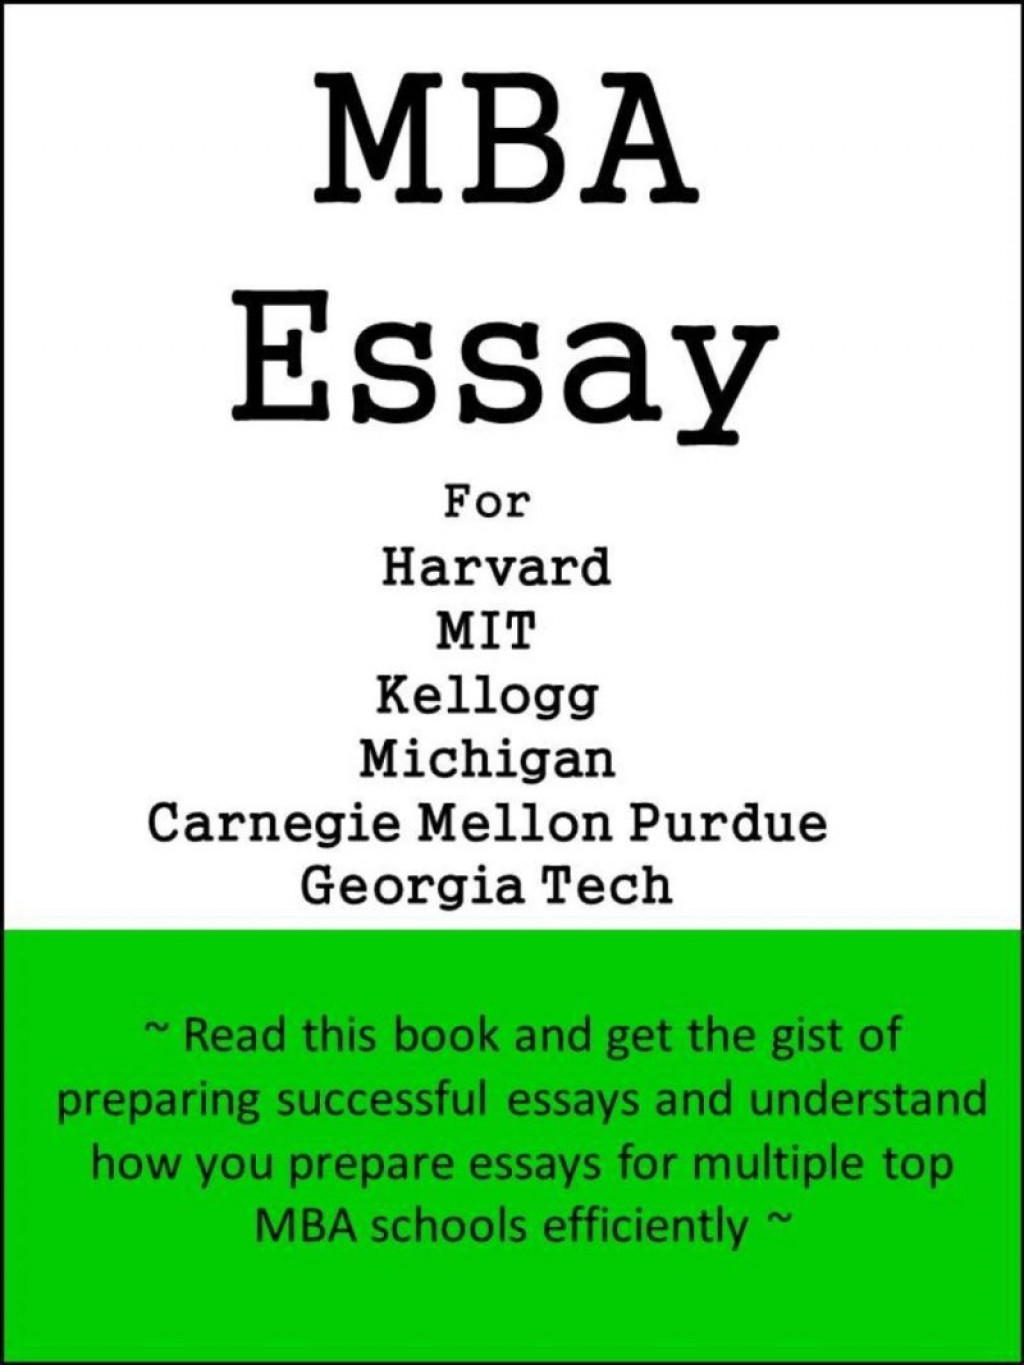 007 Kellogg Mba Essays Poemsrom Co For Harvard Mit Michigan Carnegie Mellon Purdue Georgia Tech 205 Questions Imposing Essay Samples Ga Large